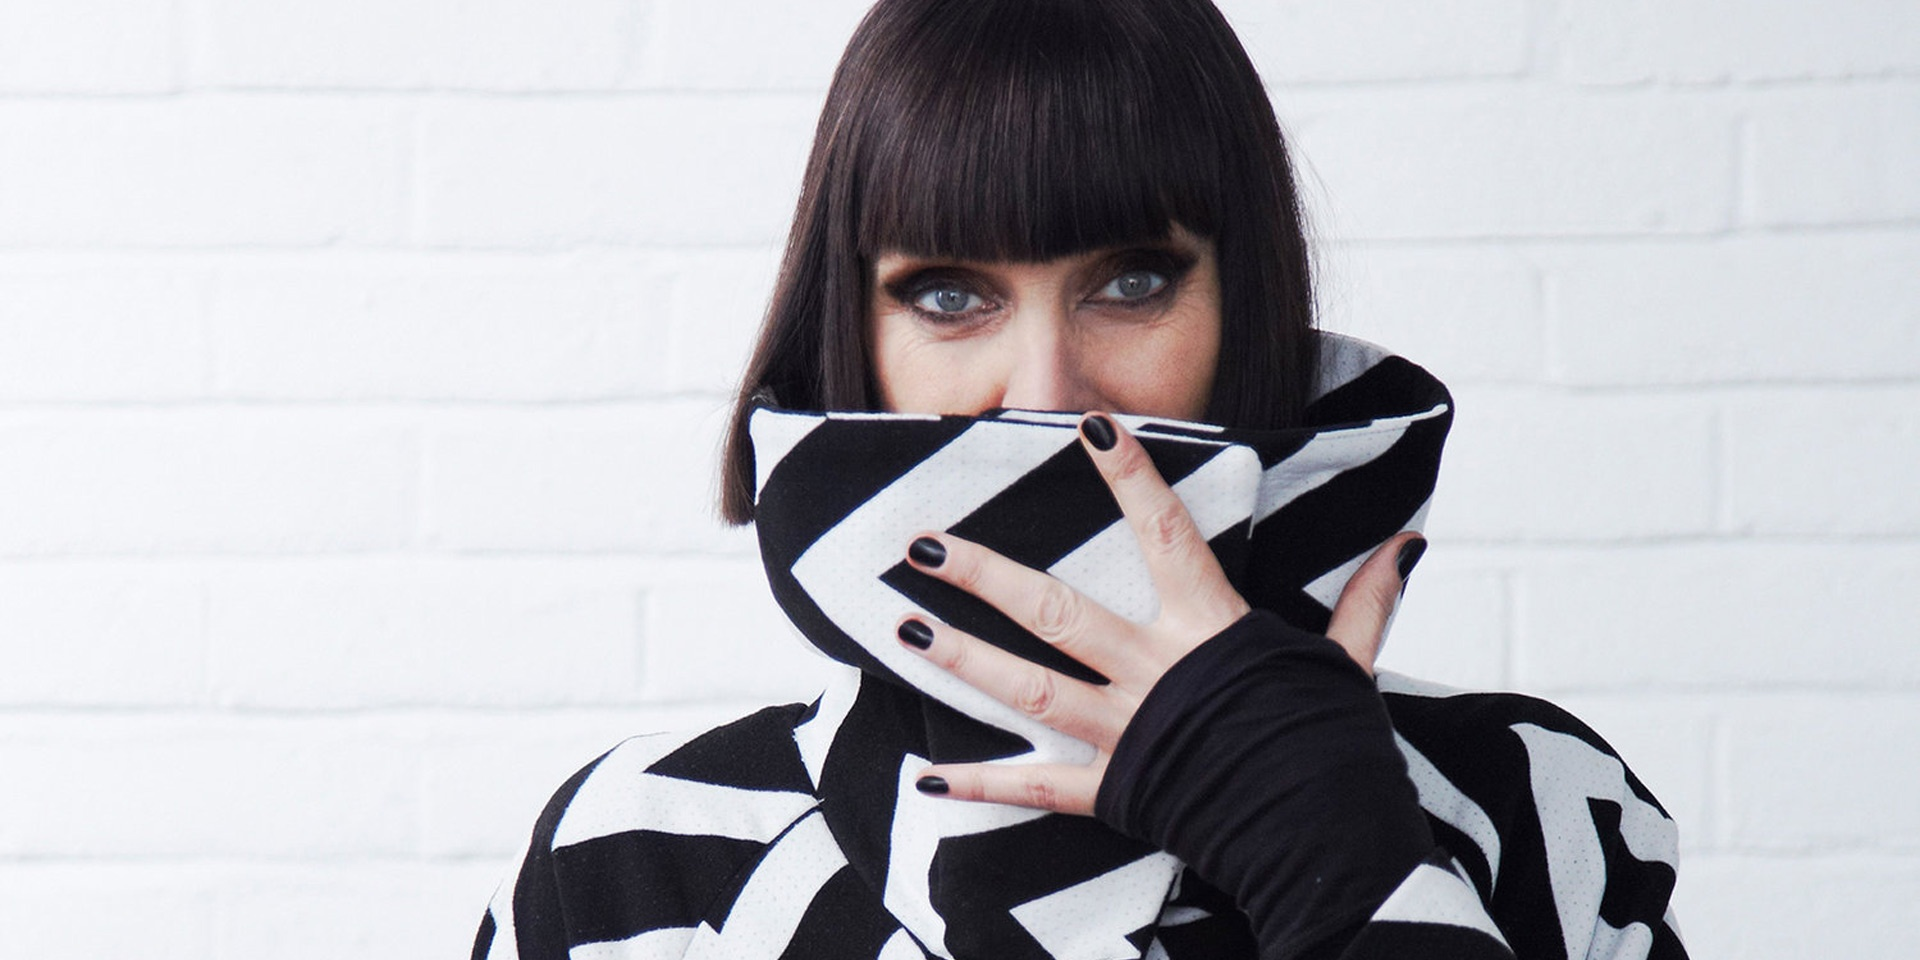 Swing Out Sister to perform in the Philippines – Manila, Davao, Cebu confirmed